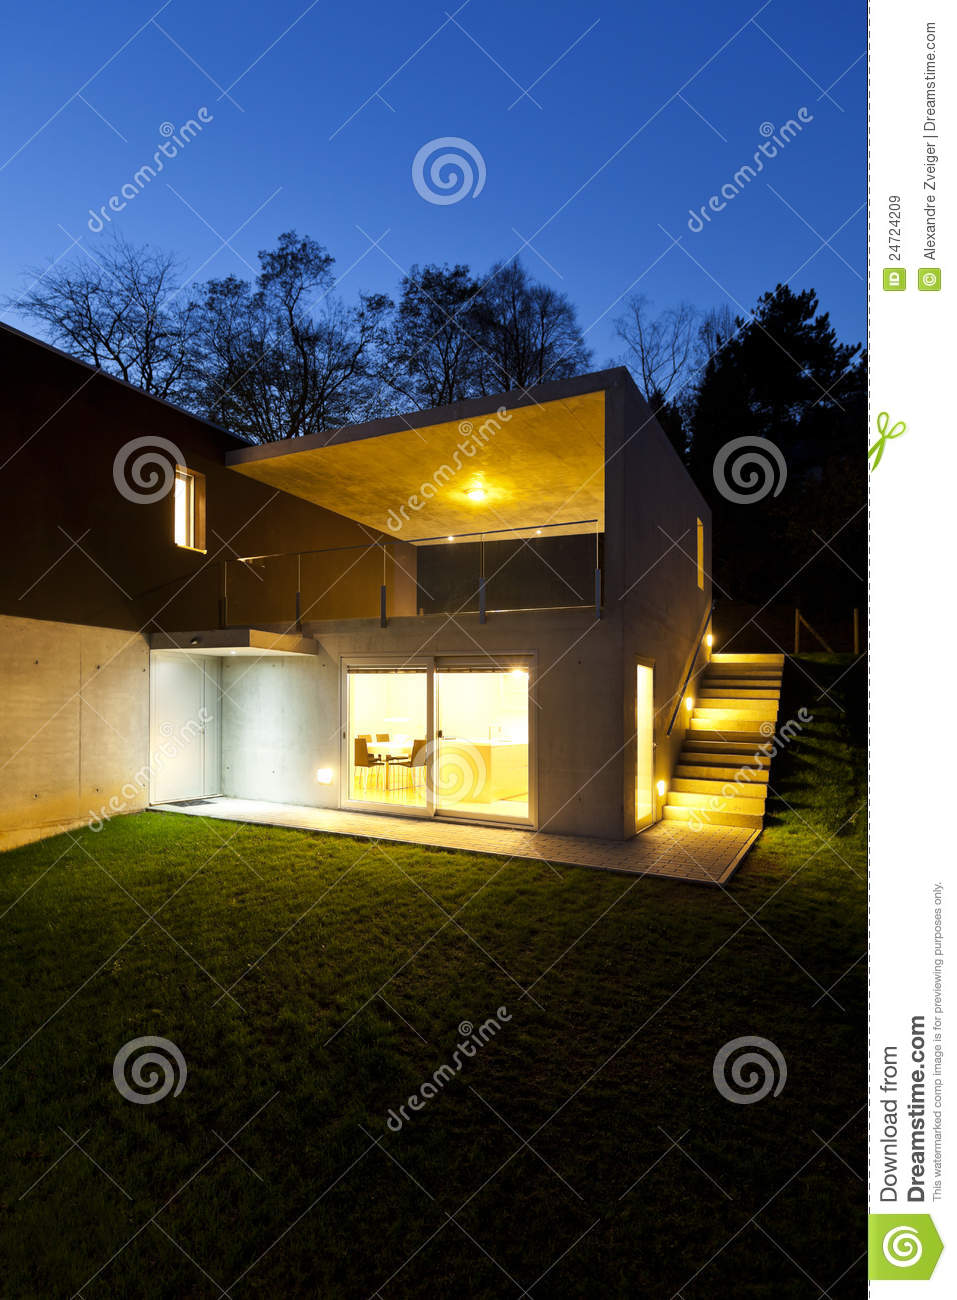 Modern house outdoor by night royalty free stock images for Modern house at night